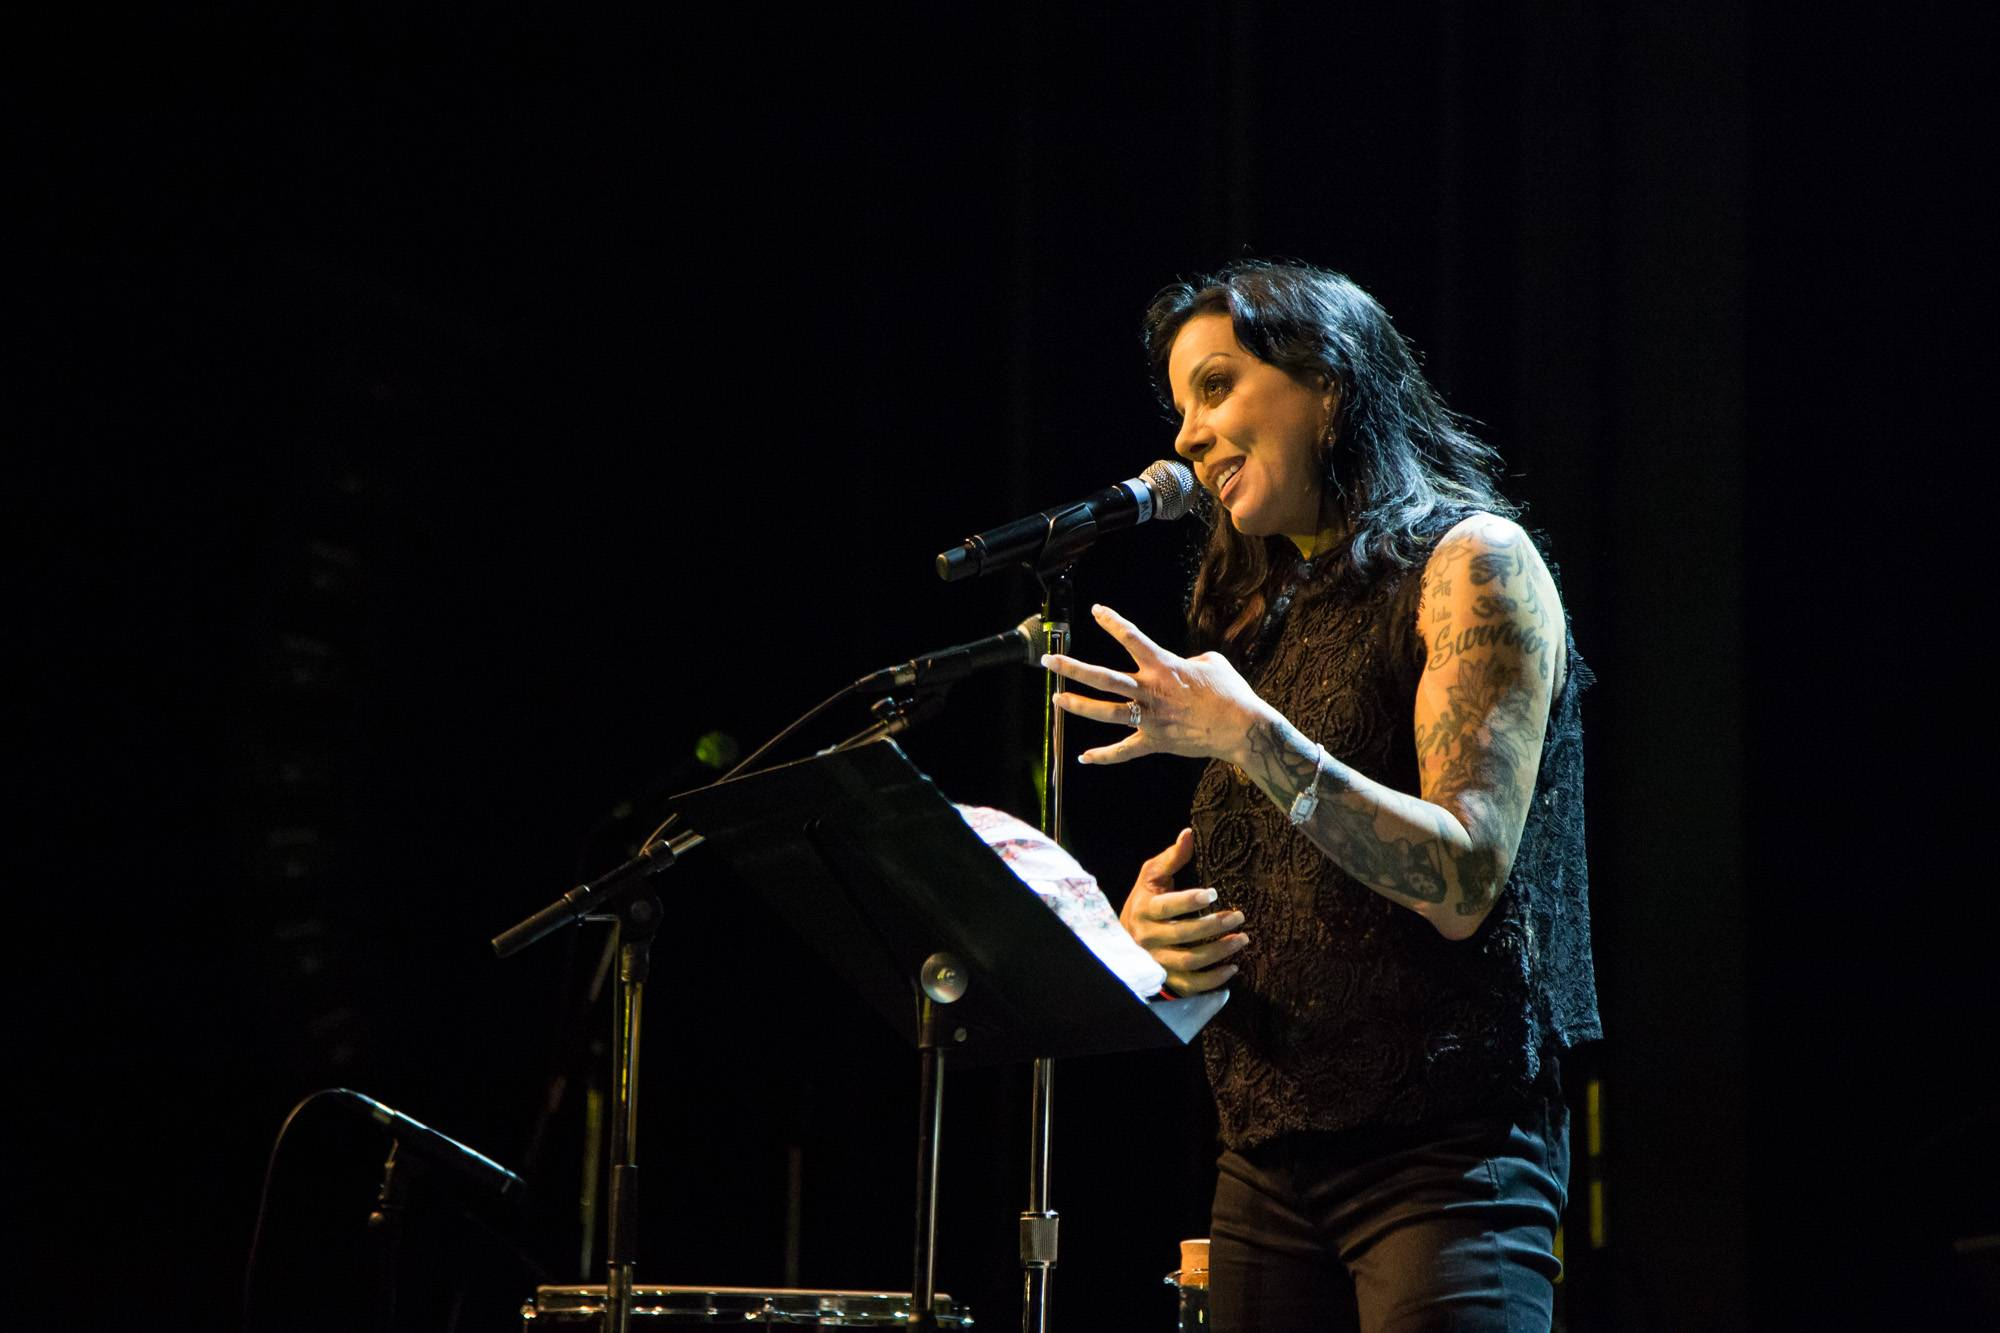 Bif Naked speaking at the Vogue Theatre, Vancouver, July 15 2017. Kirk Chantraine photo.